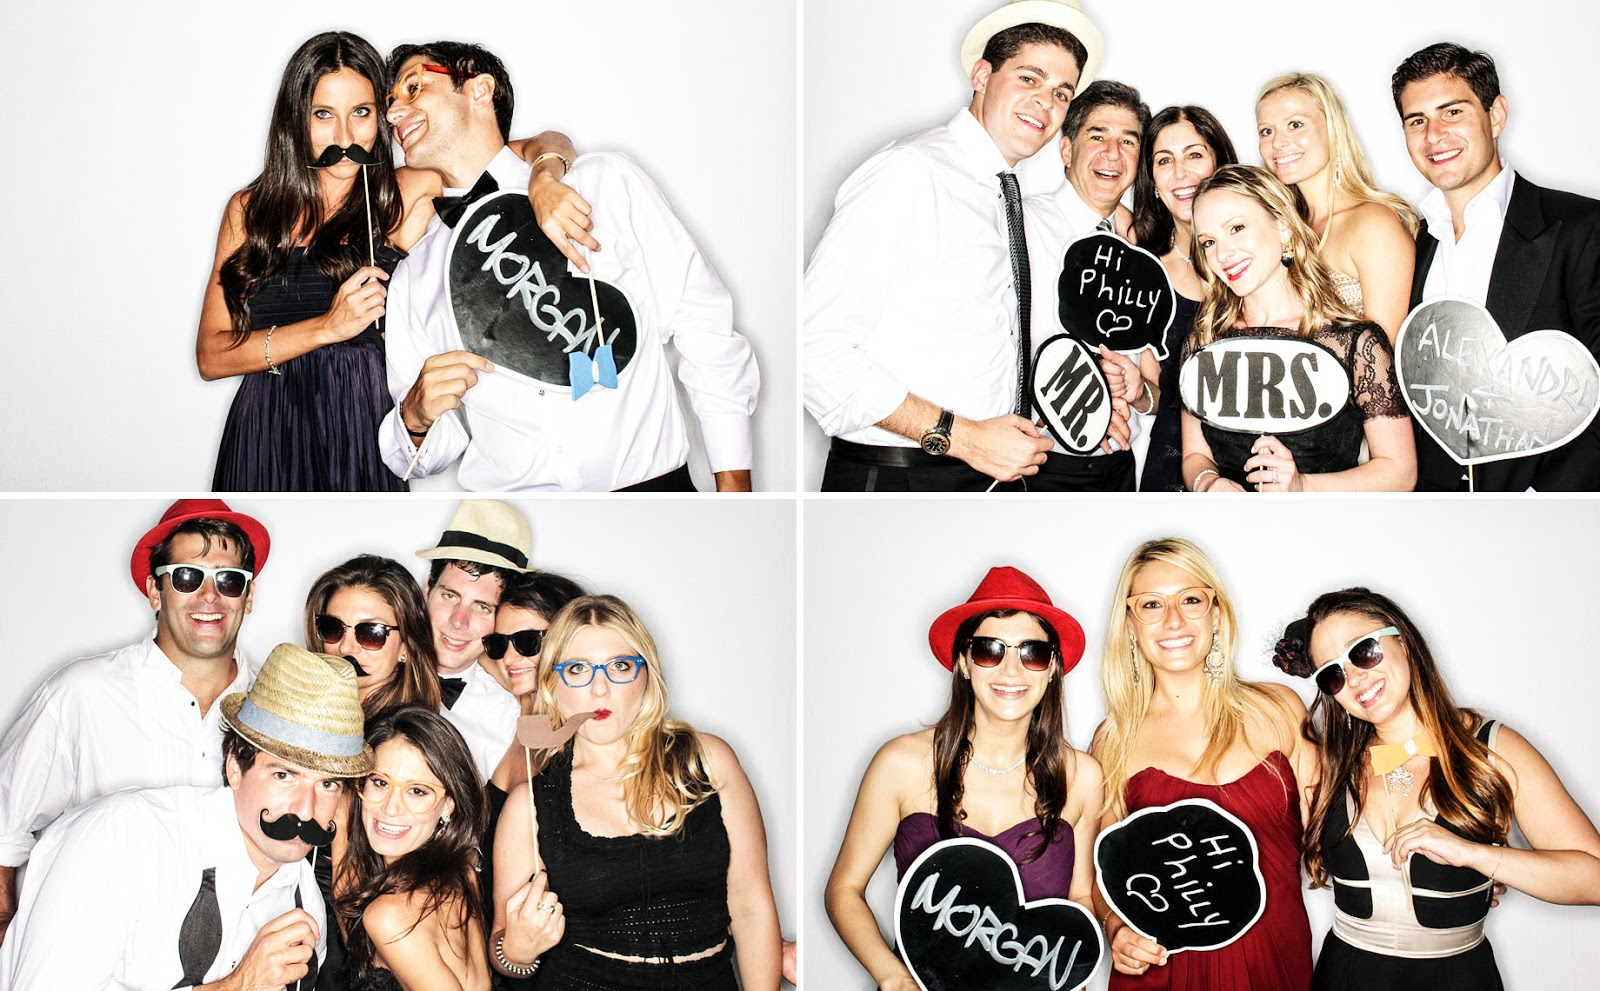 Best Way To Get Crazy Inside A Photobooth